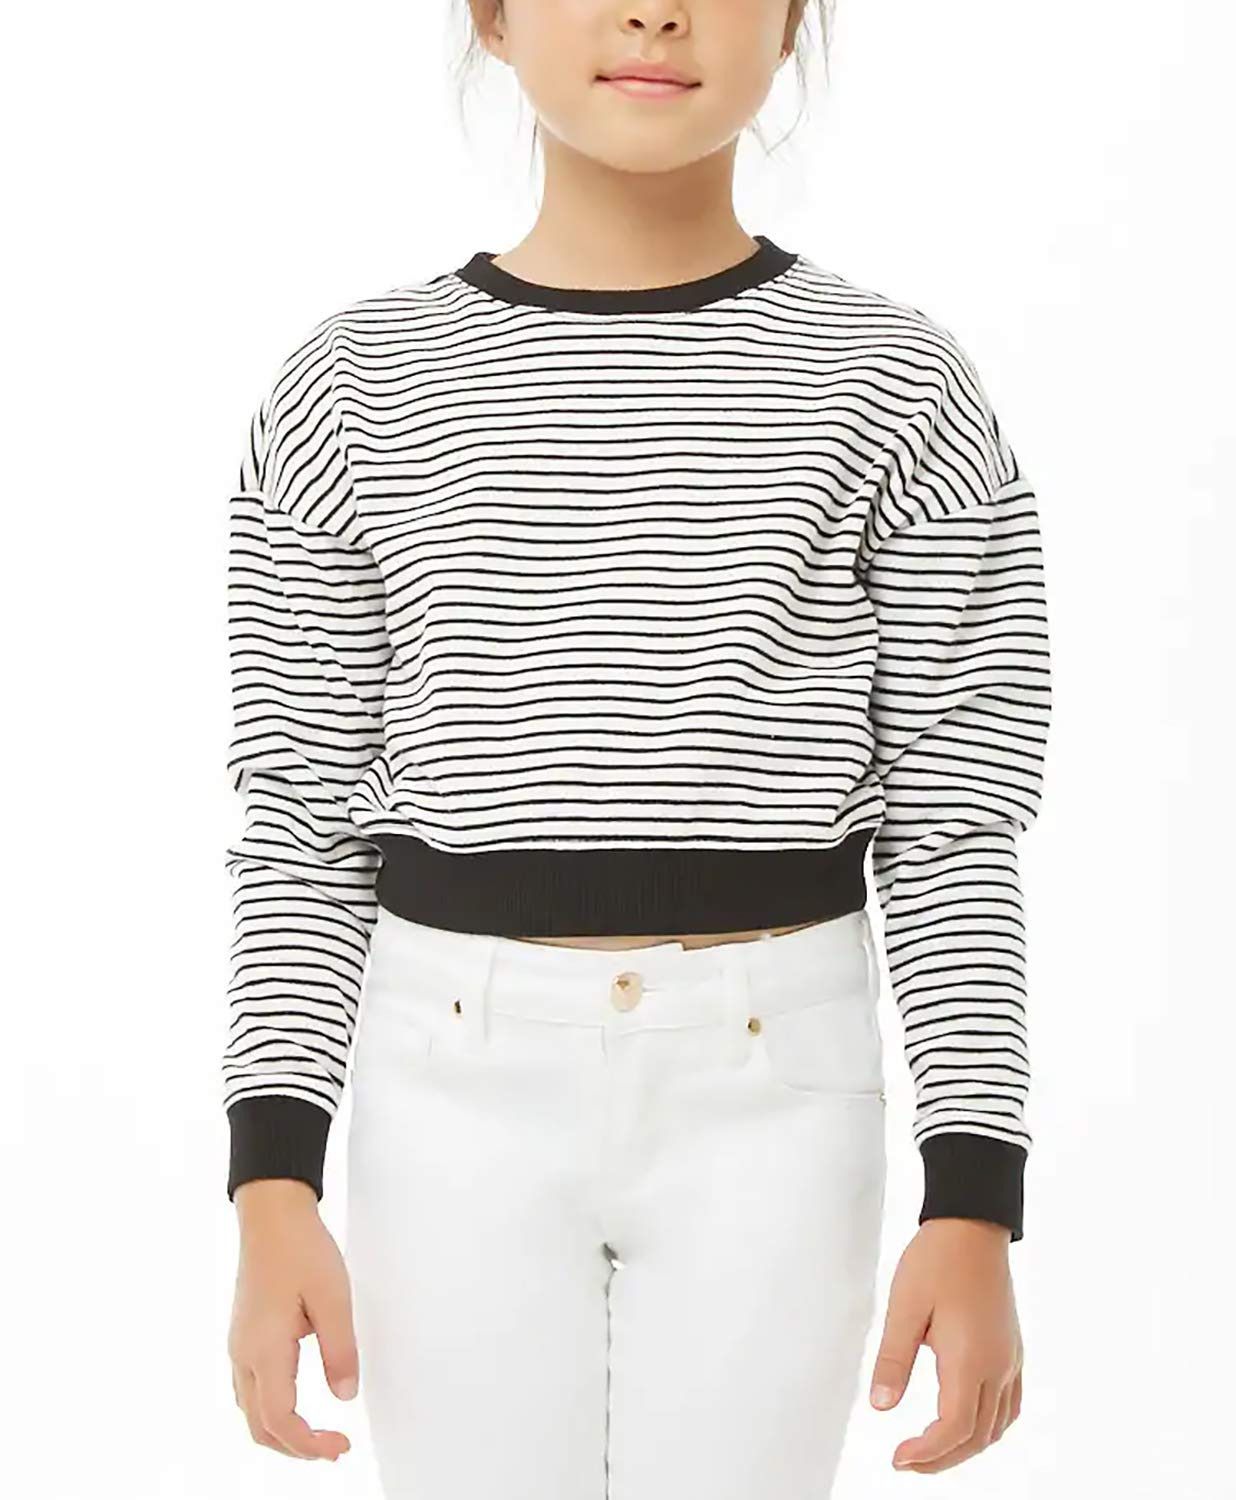 KunLunMen Girls Cropped Tops Casual Fall Clothes Long Sleeves Striped t Shirts Blouses Black Size 4-5